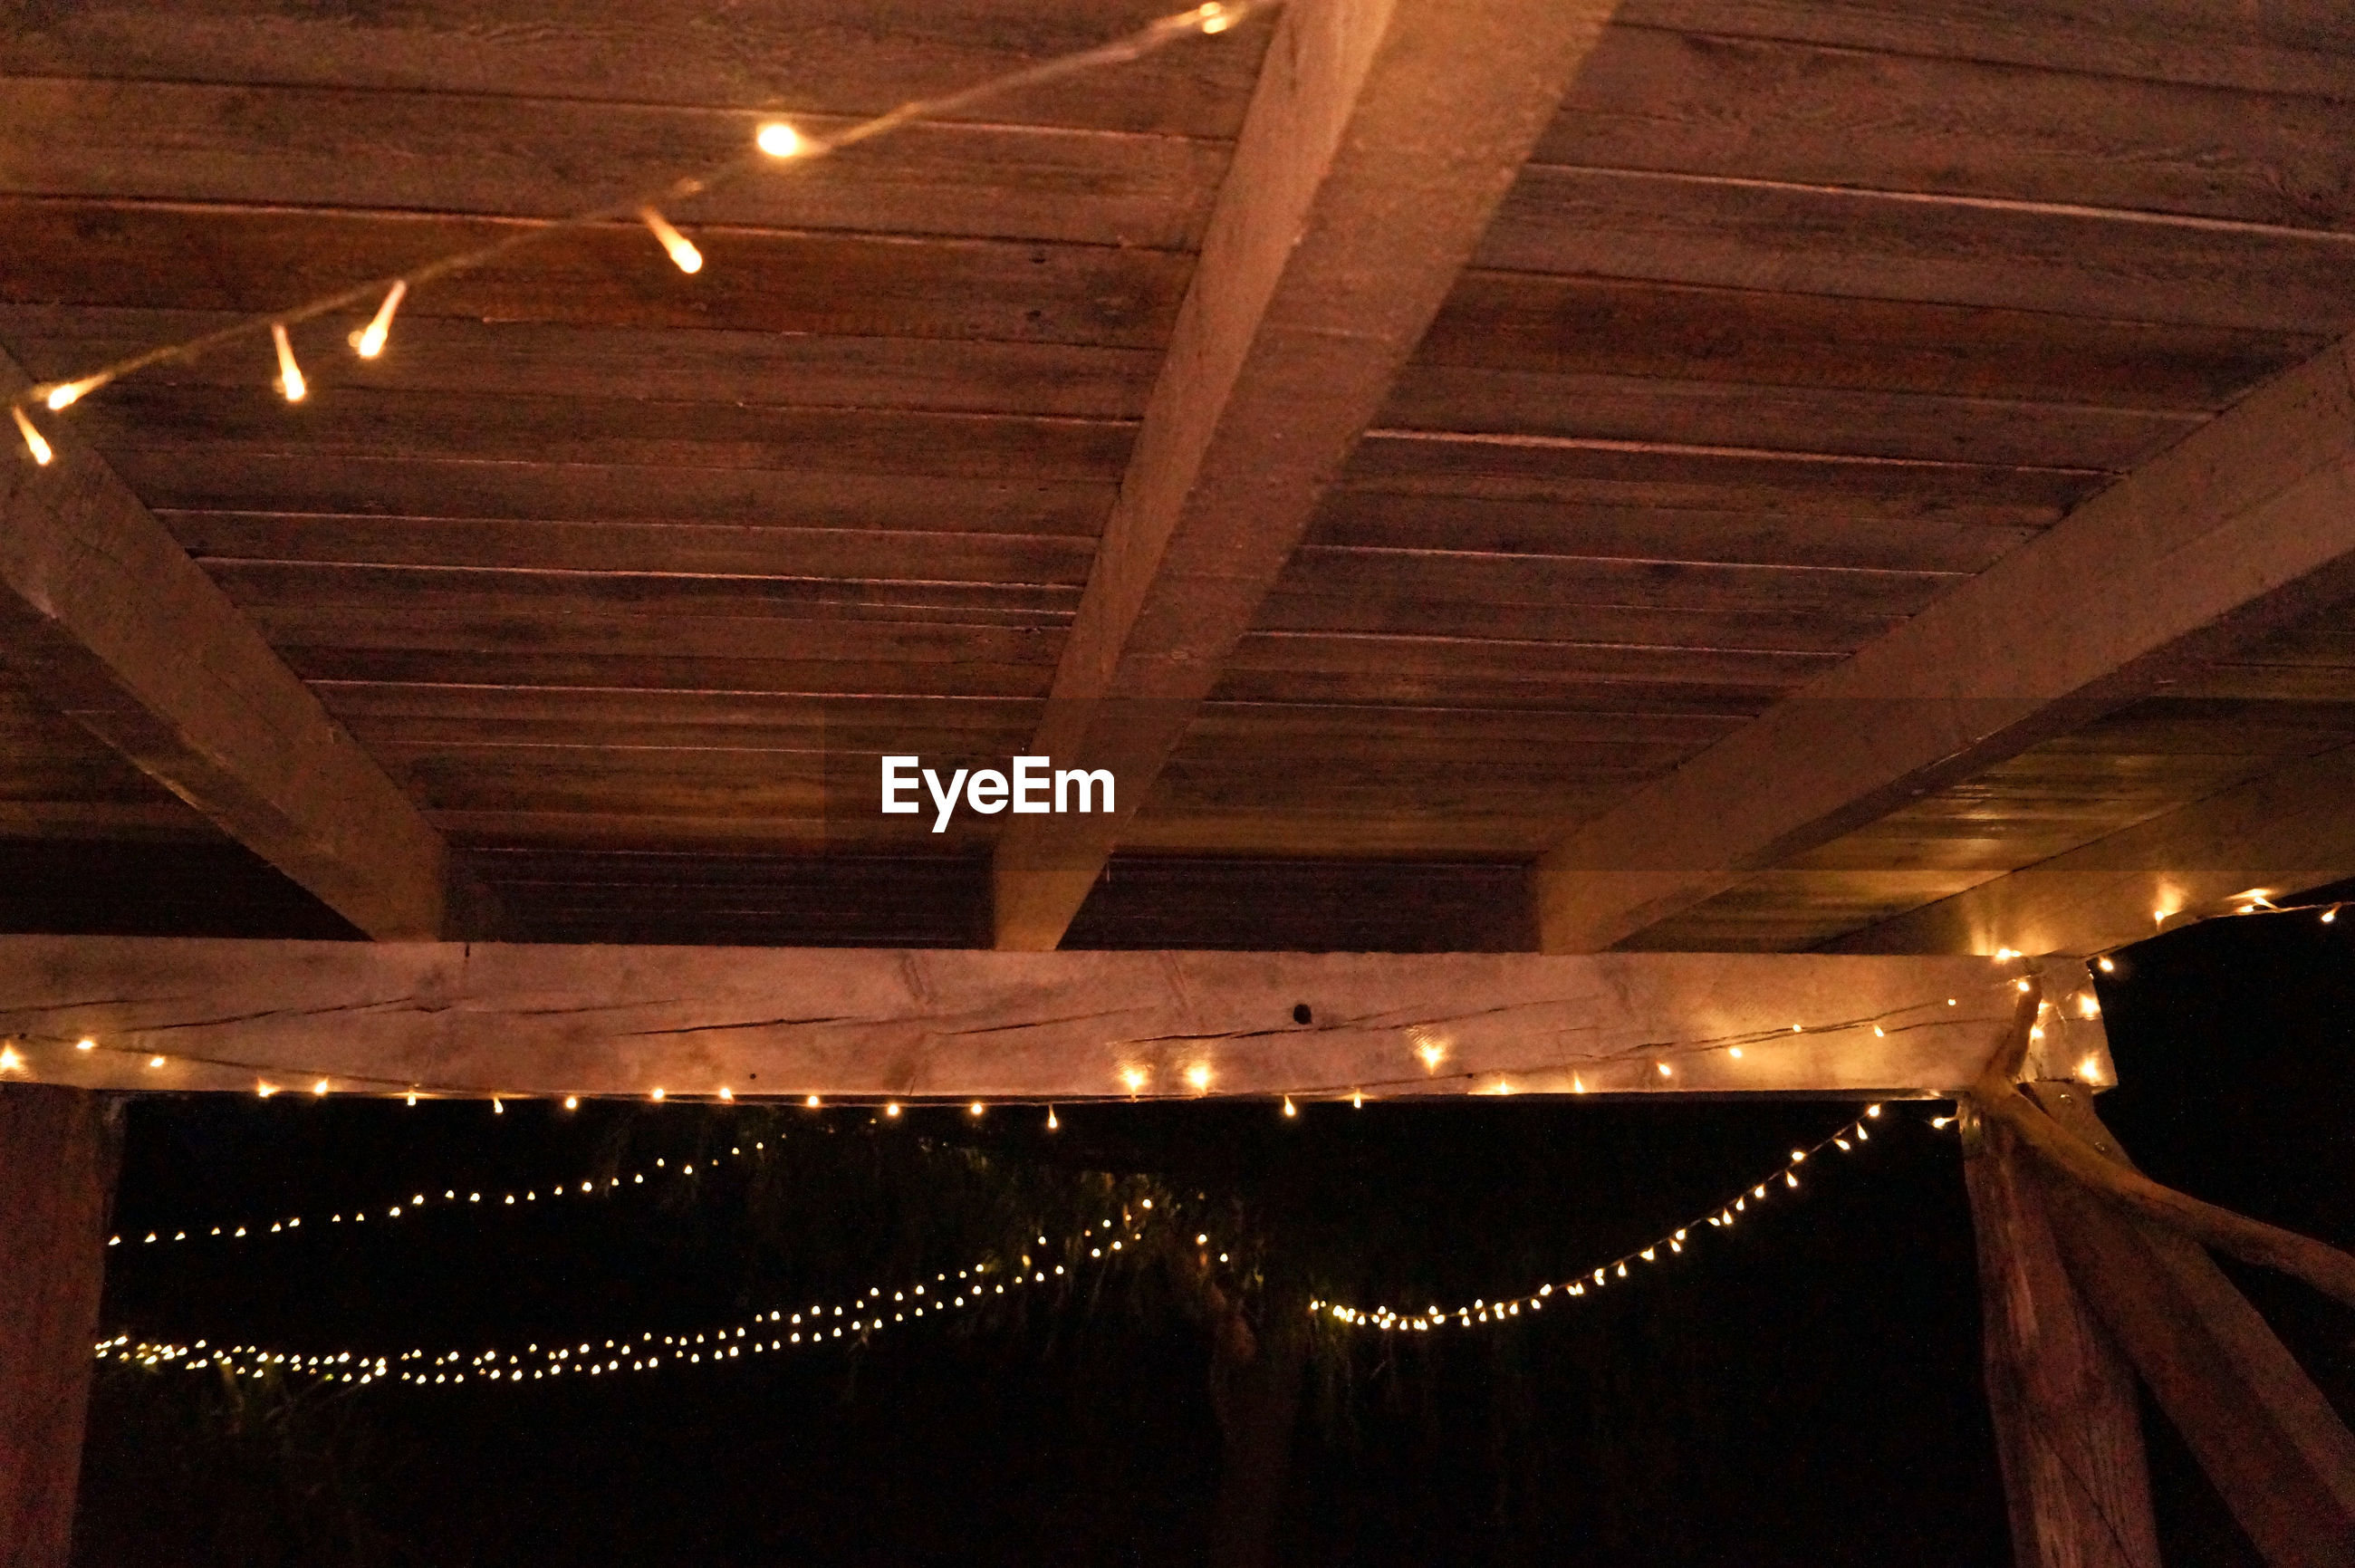 Low angle view of illuminated fairy light decoration on wooden ceiling at night